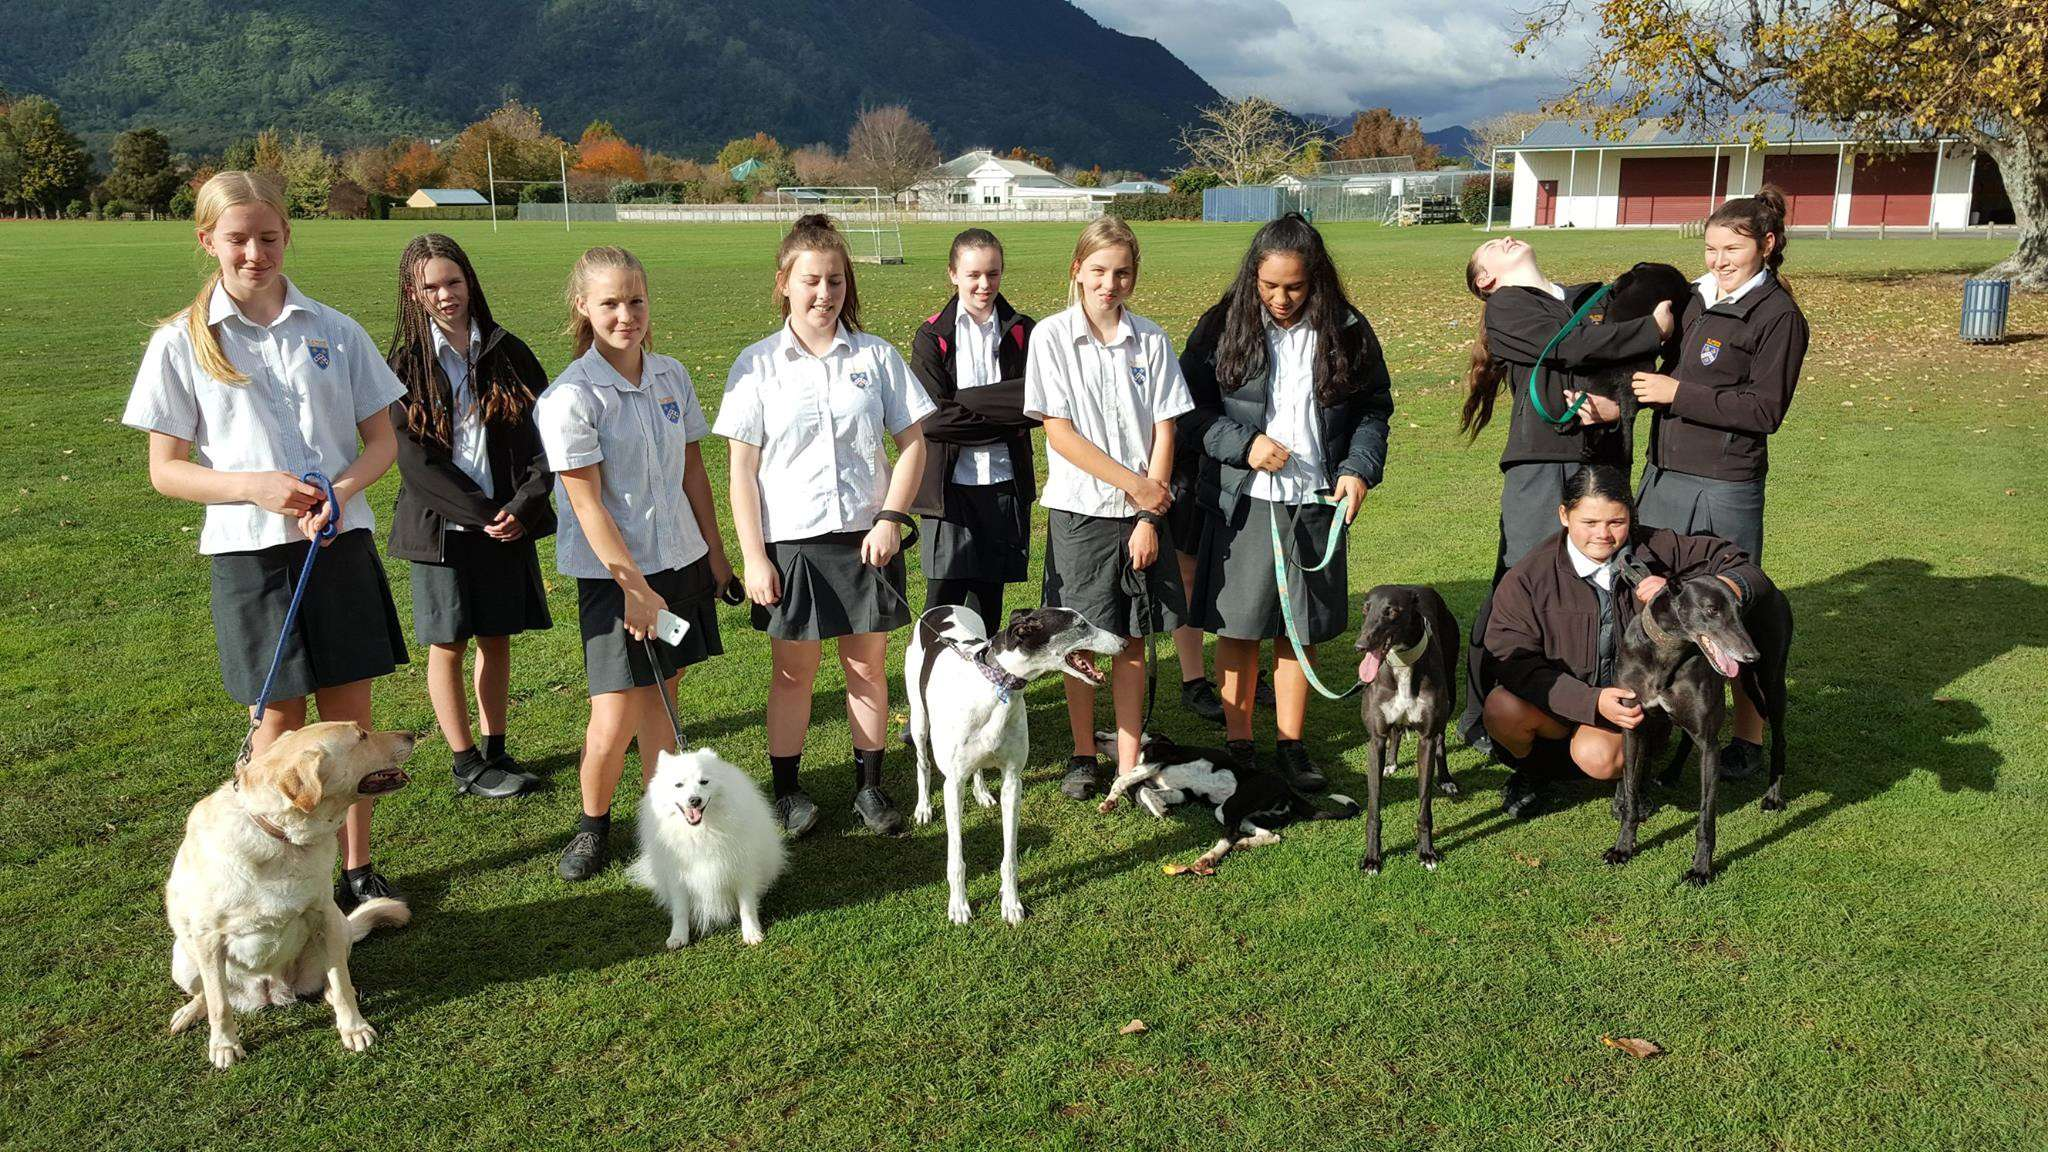 Animal Care Interest Day Group - Interest Day - Curriculum  -  Te Aroha College